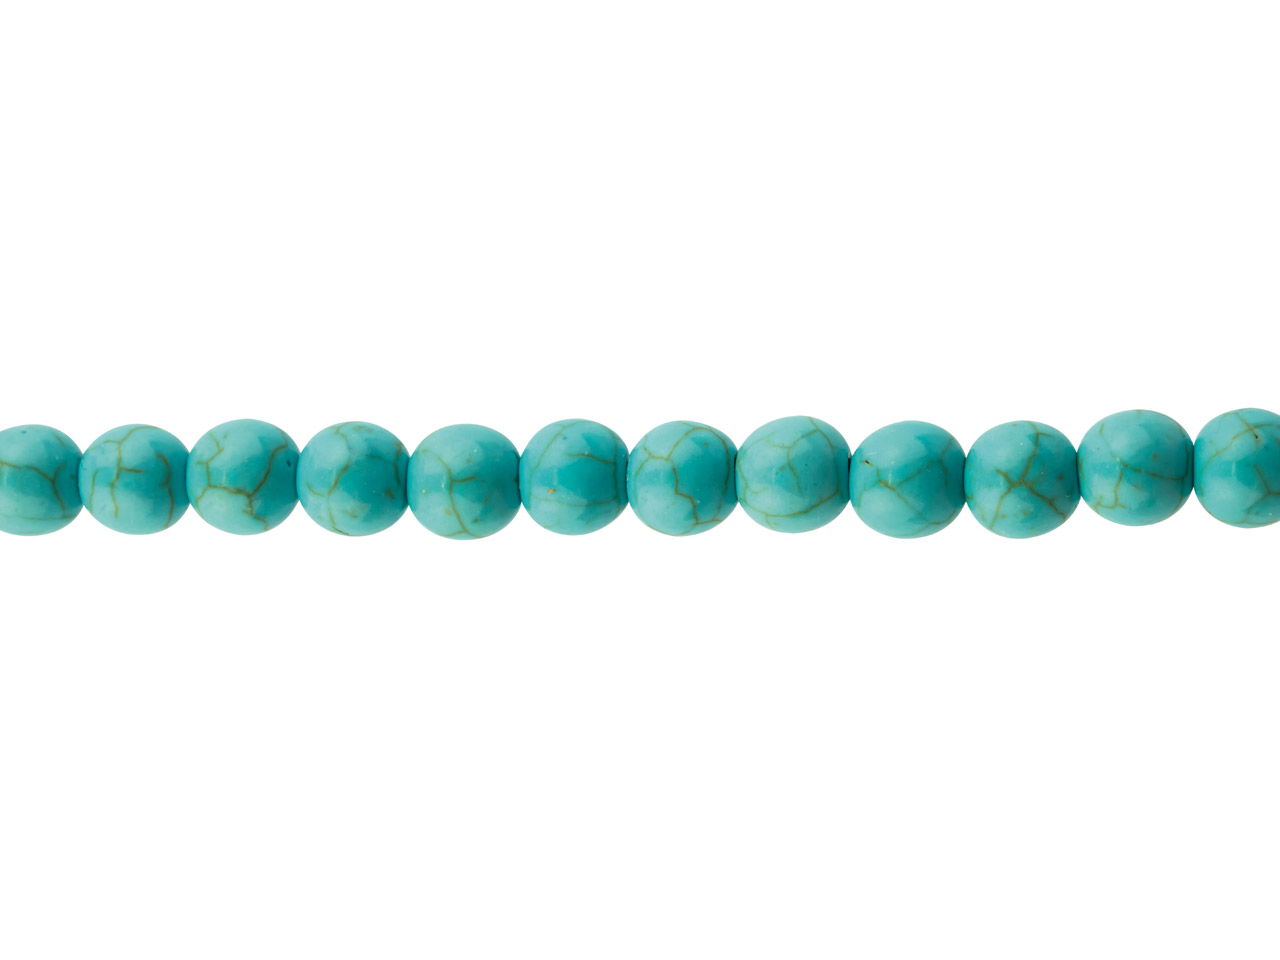 Synthetic Turquoise Semi Precious   Round Beads, 8mm, 15.5